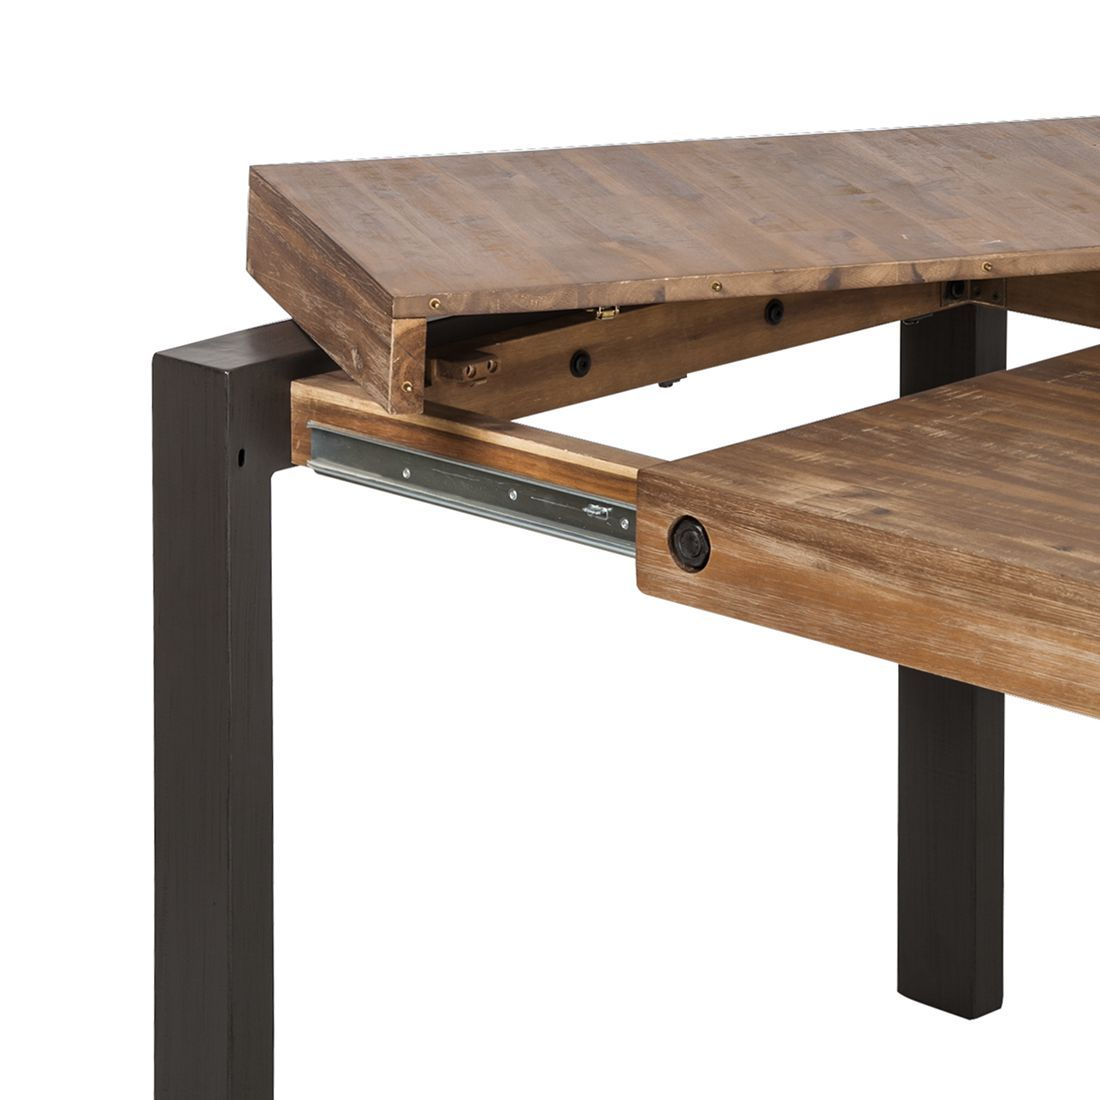 Table Manchester Iii Table A Manger Industriel Table De Salle A Manger Bois Table Salle A Manger